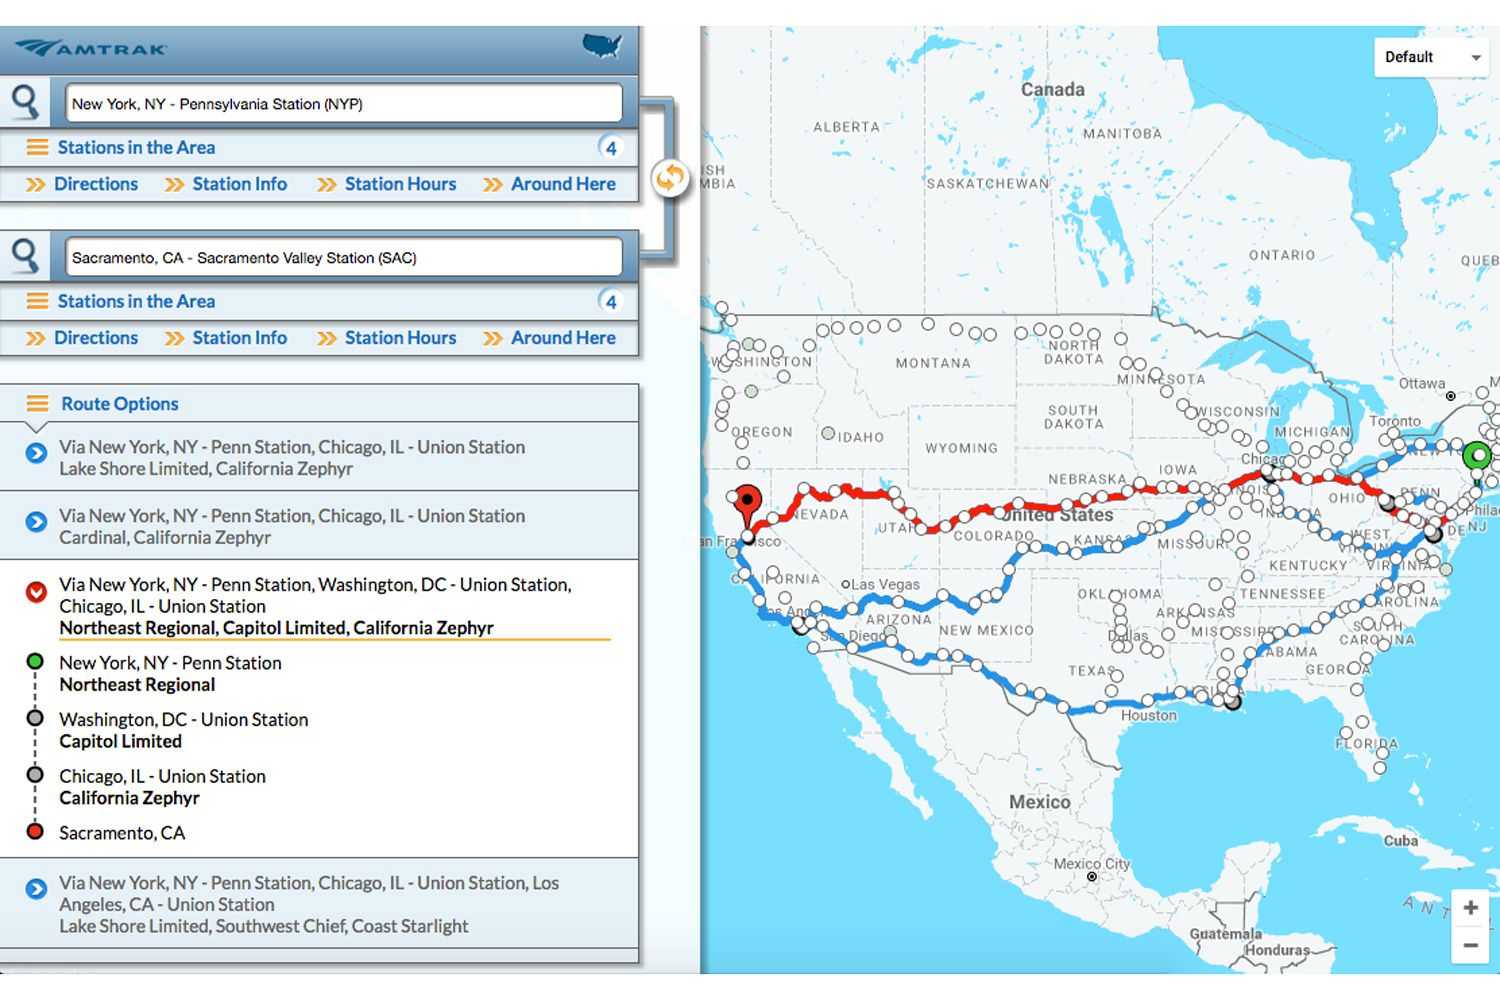 A Photo Guide to Traveling on Amtrak on amtrak saluki map, california zephyr route map, amtrak city of new orleans map, amtrak map california bay area, amtrak carolinian map, amtrak lake shore limited map, amtrak keystone map, amtrak mountaineer map, amtrak yosemite tour, california zephyr train map, amtrak map california and oregon, amtrak california rail map, amtrak san joaquin map, amtrak silver service map, amtrak stations california map, amtrak empire builder map, amtrak three rivers map, amtrak coaster map, amtrak palmetto map, amtrak sunset limited map,